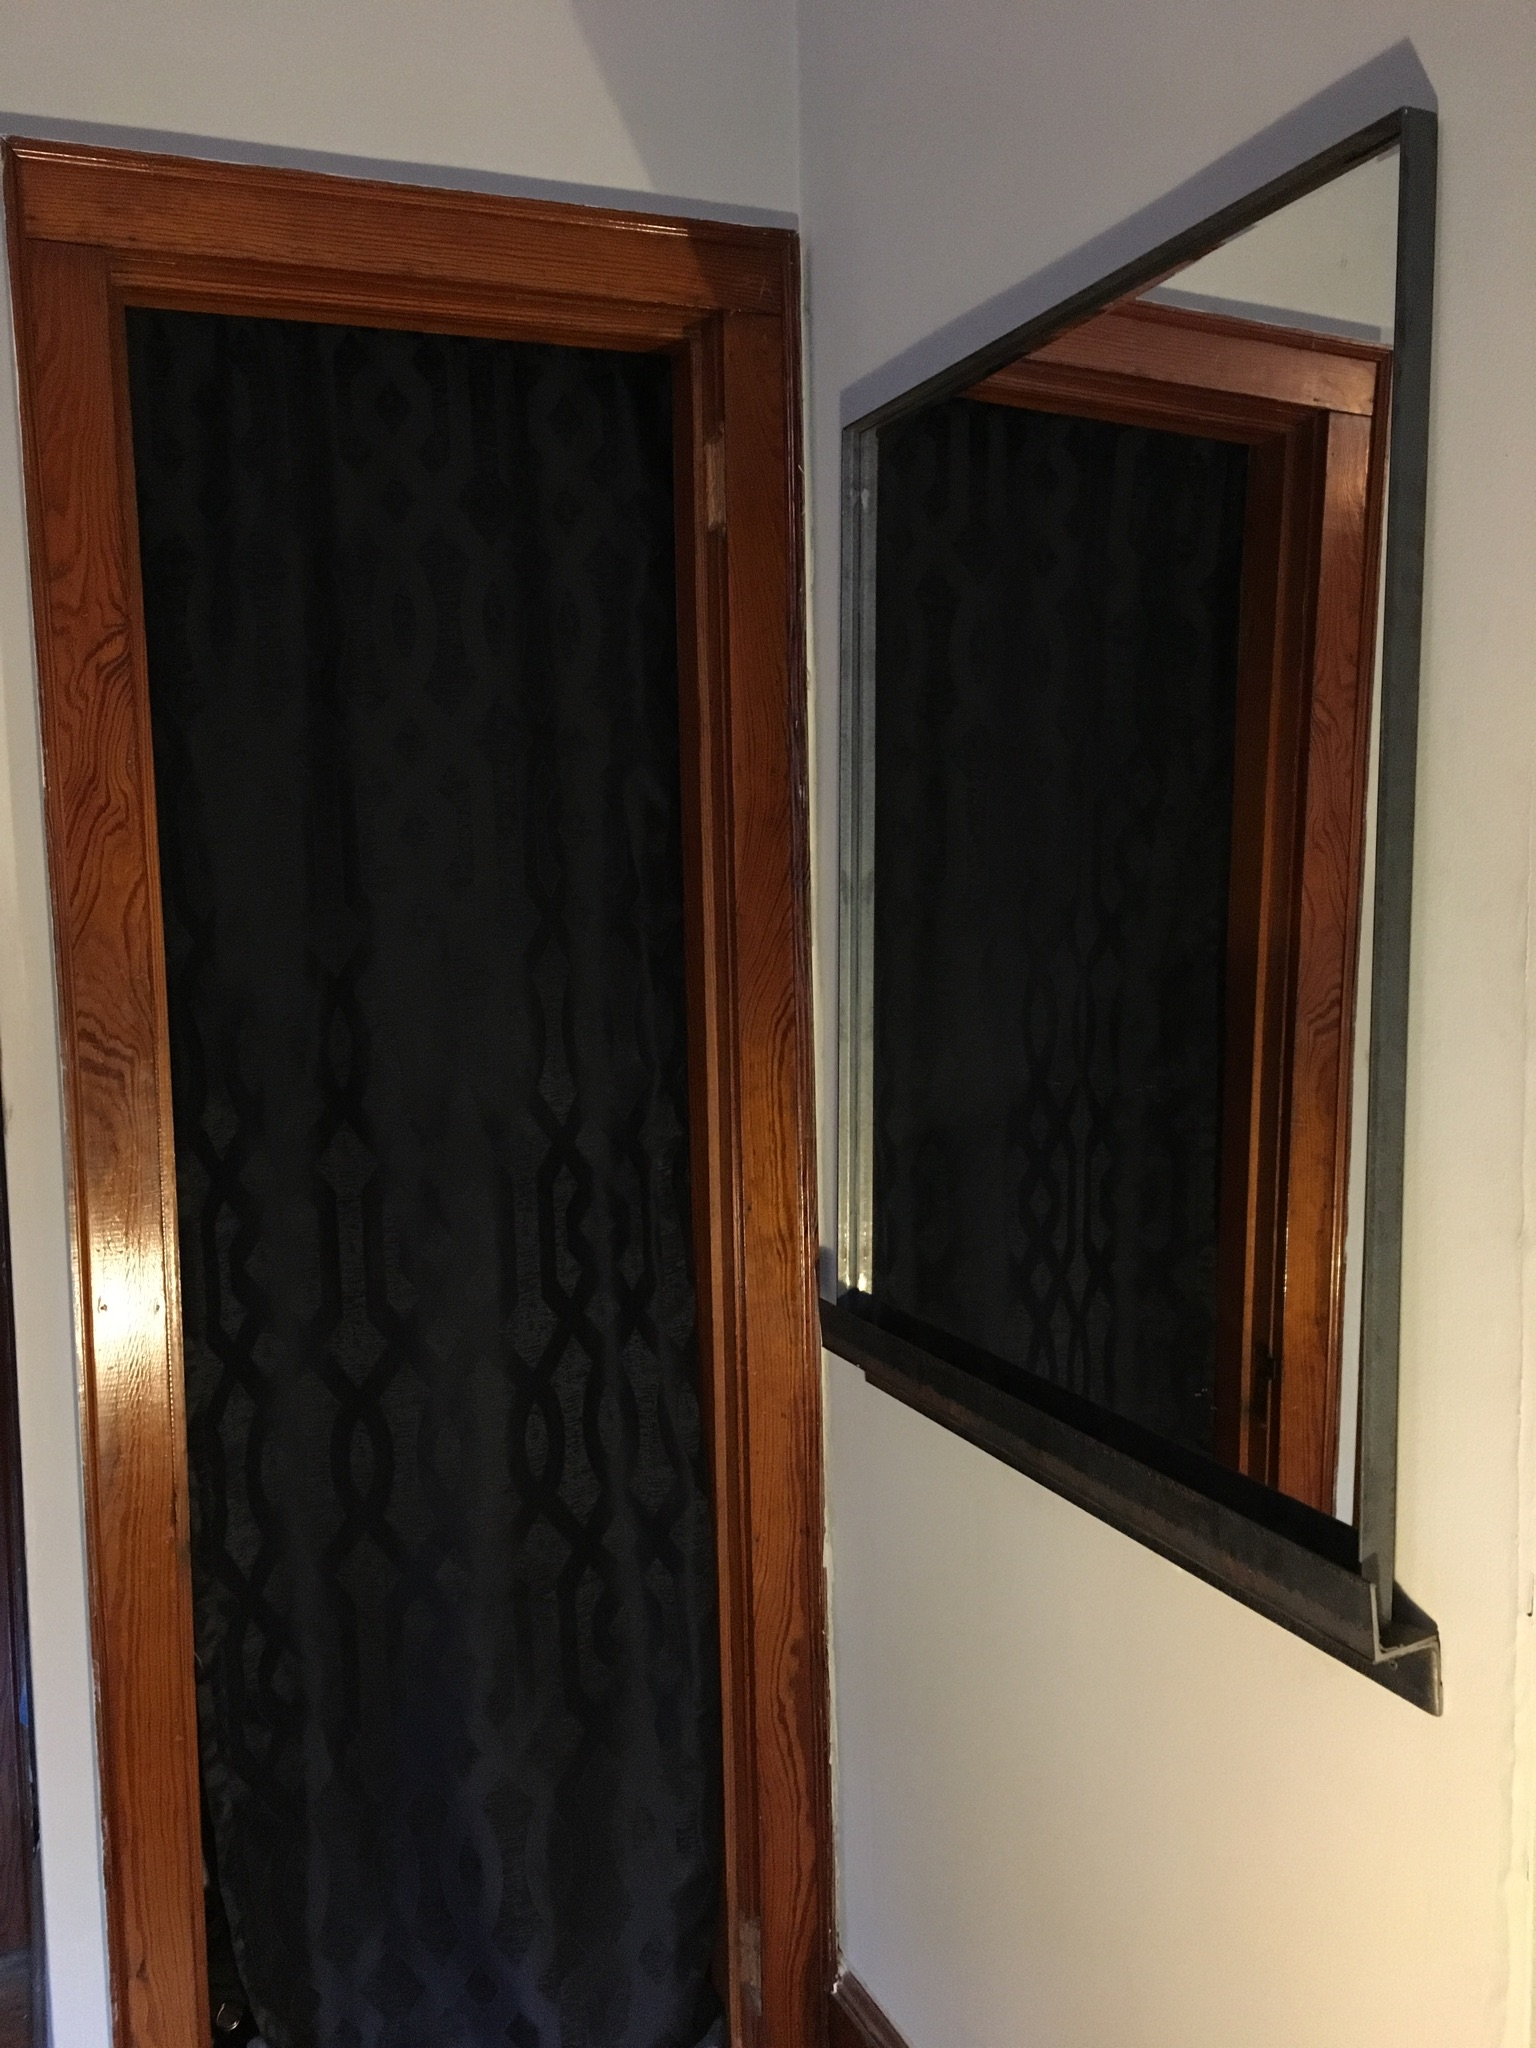 mirror frame/bracket